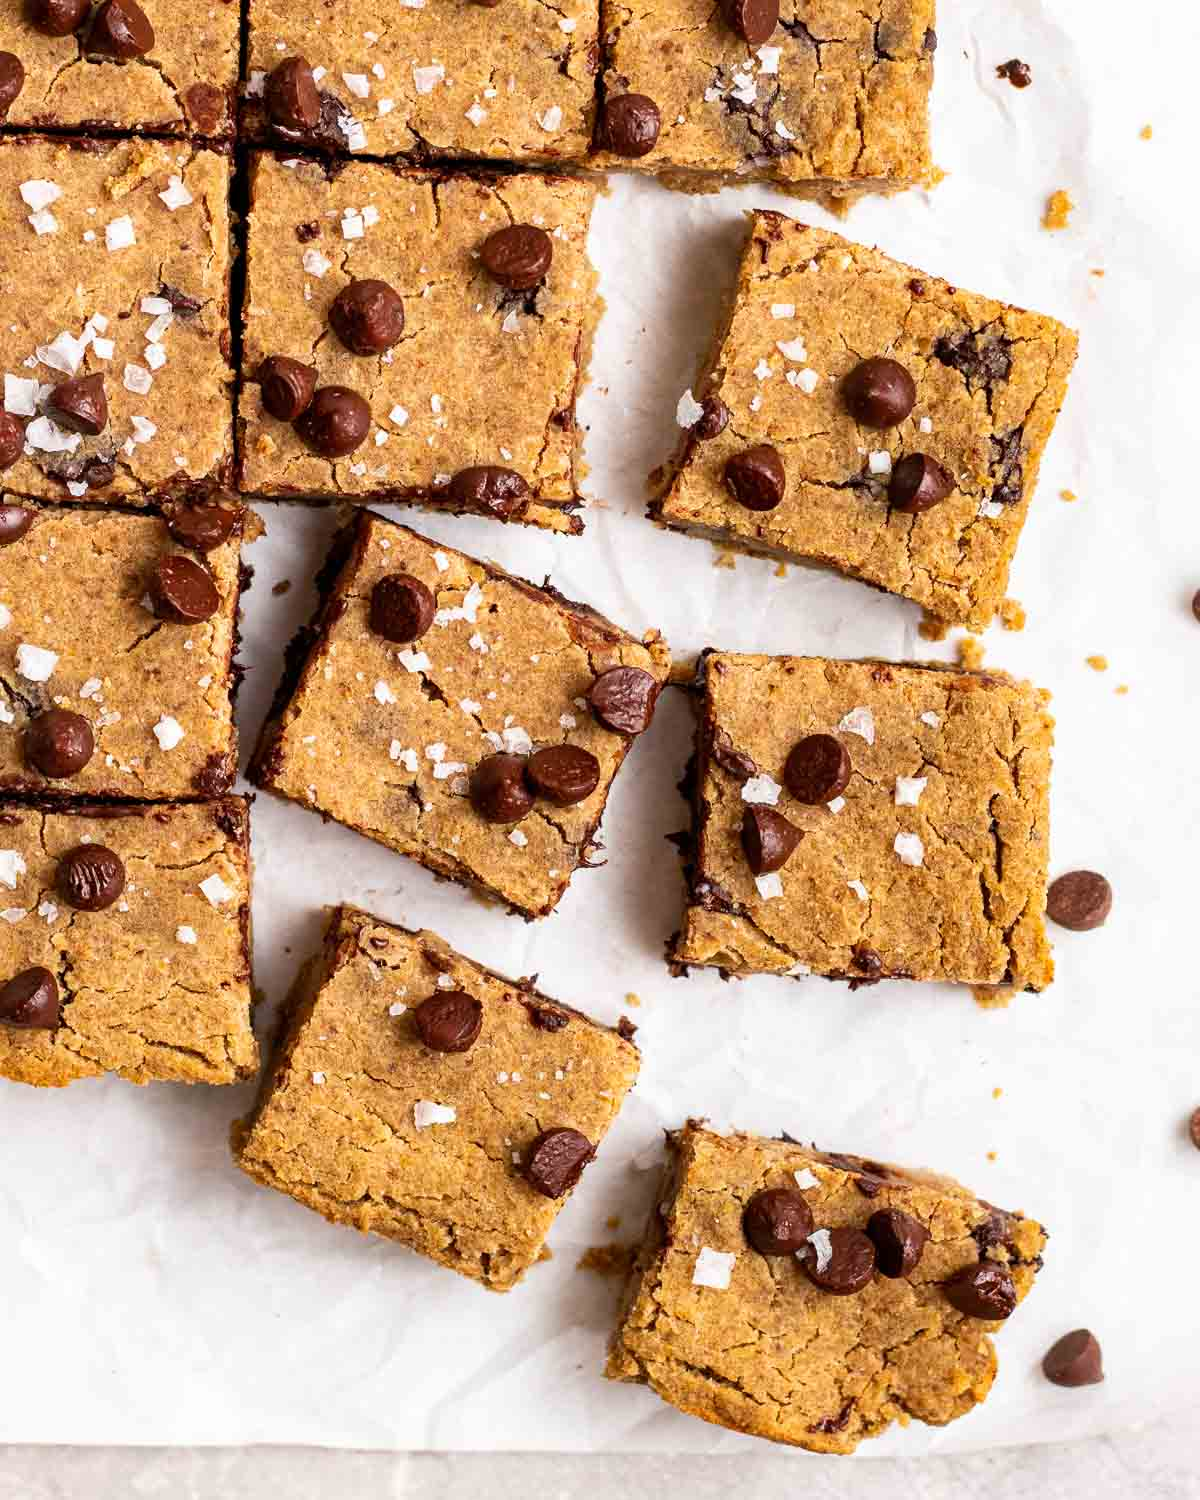 A tray of peanut butter blondies arranged on a parchment paper topped with sea salt flakes.